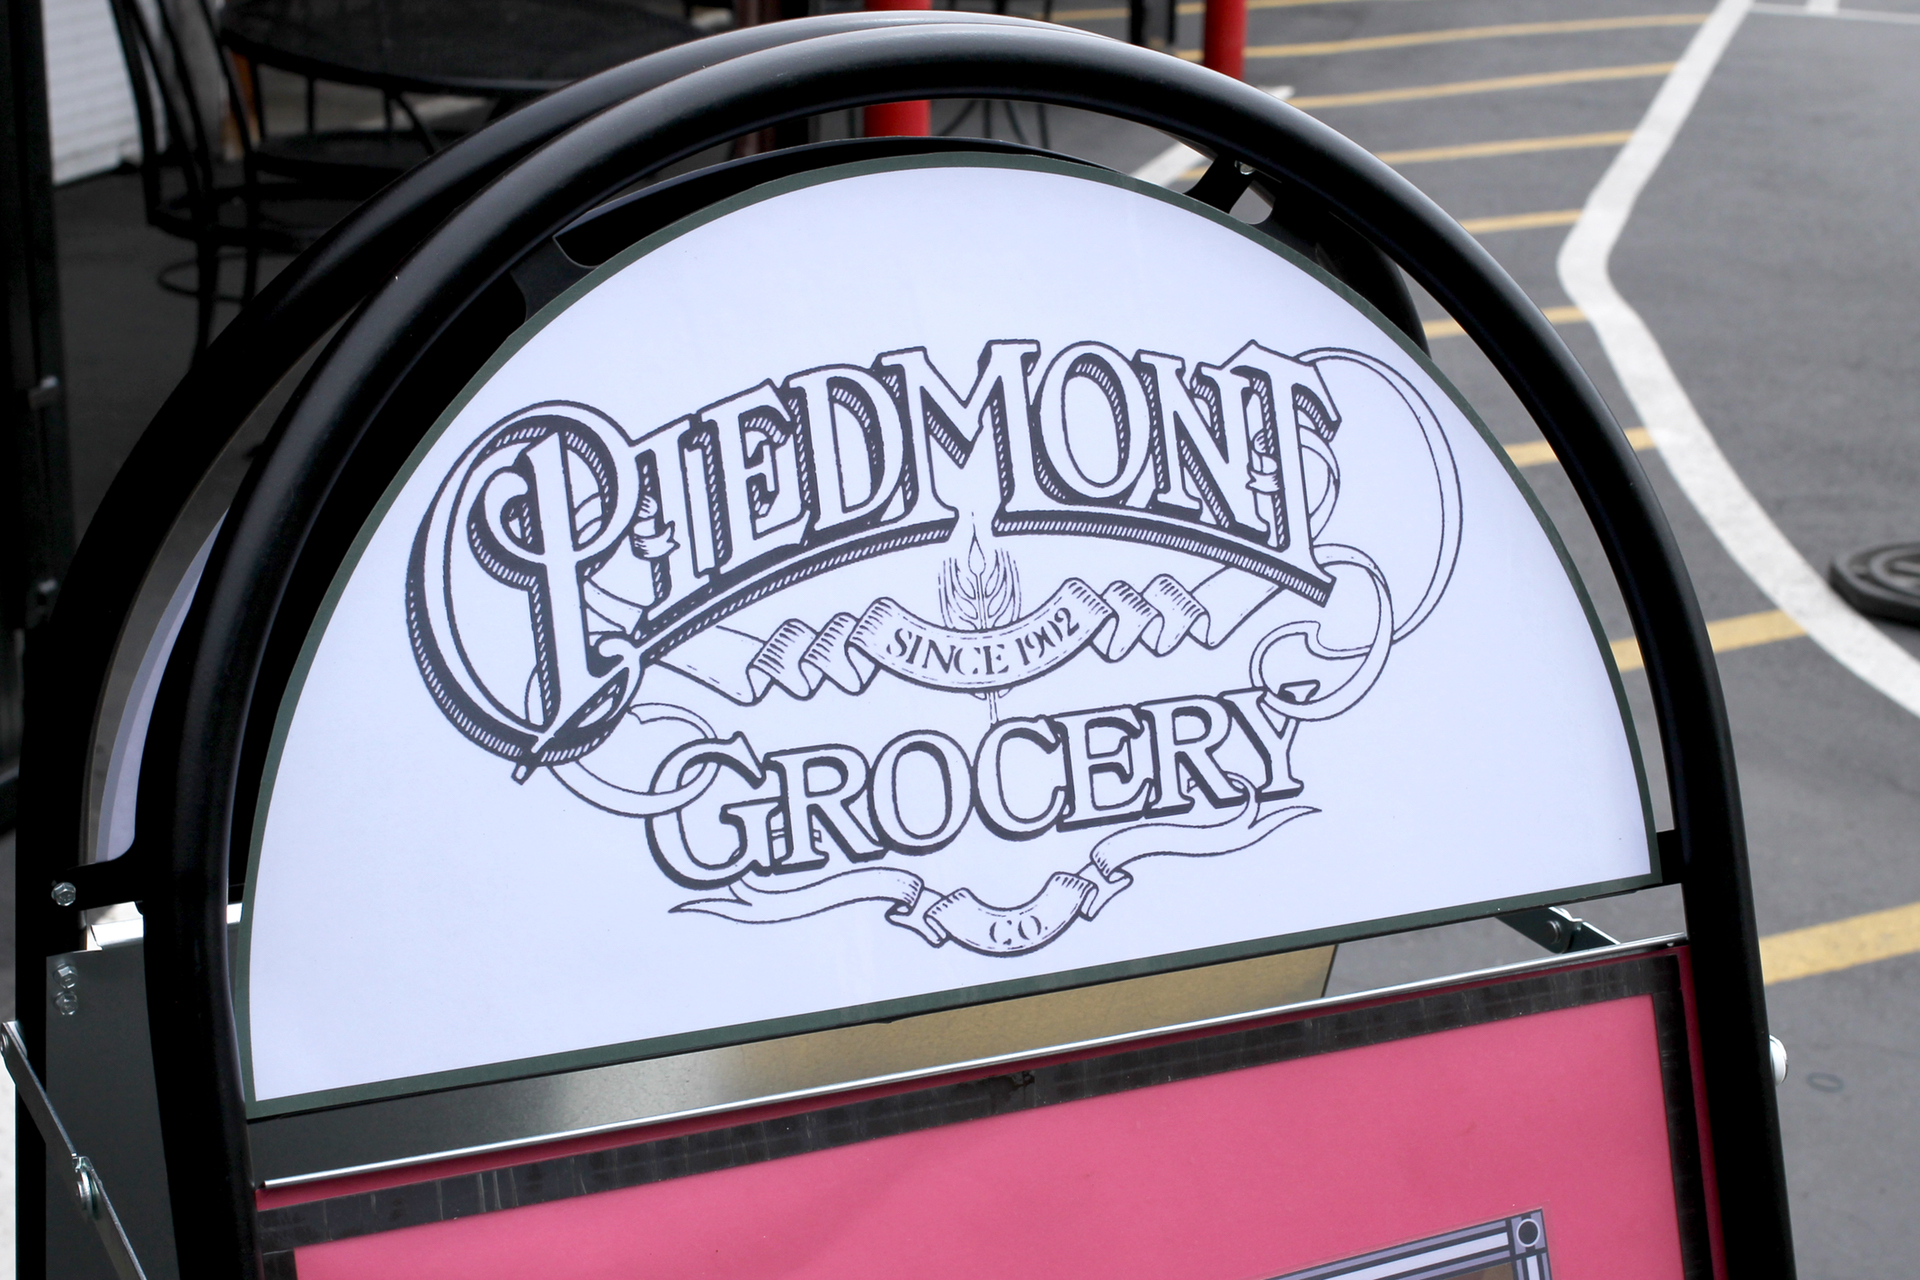 Piedmont Grocery has been on the Avenue for over 100 years.